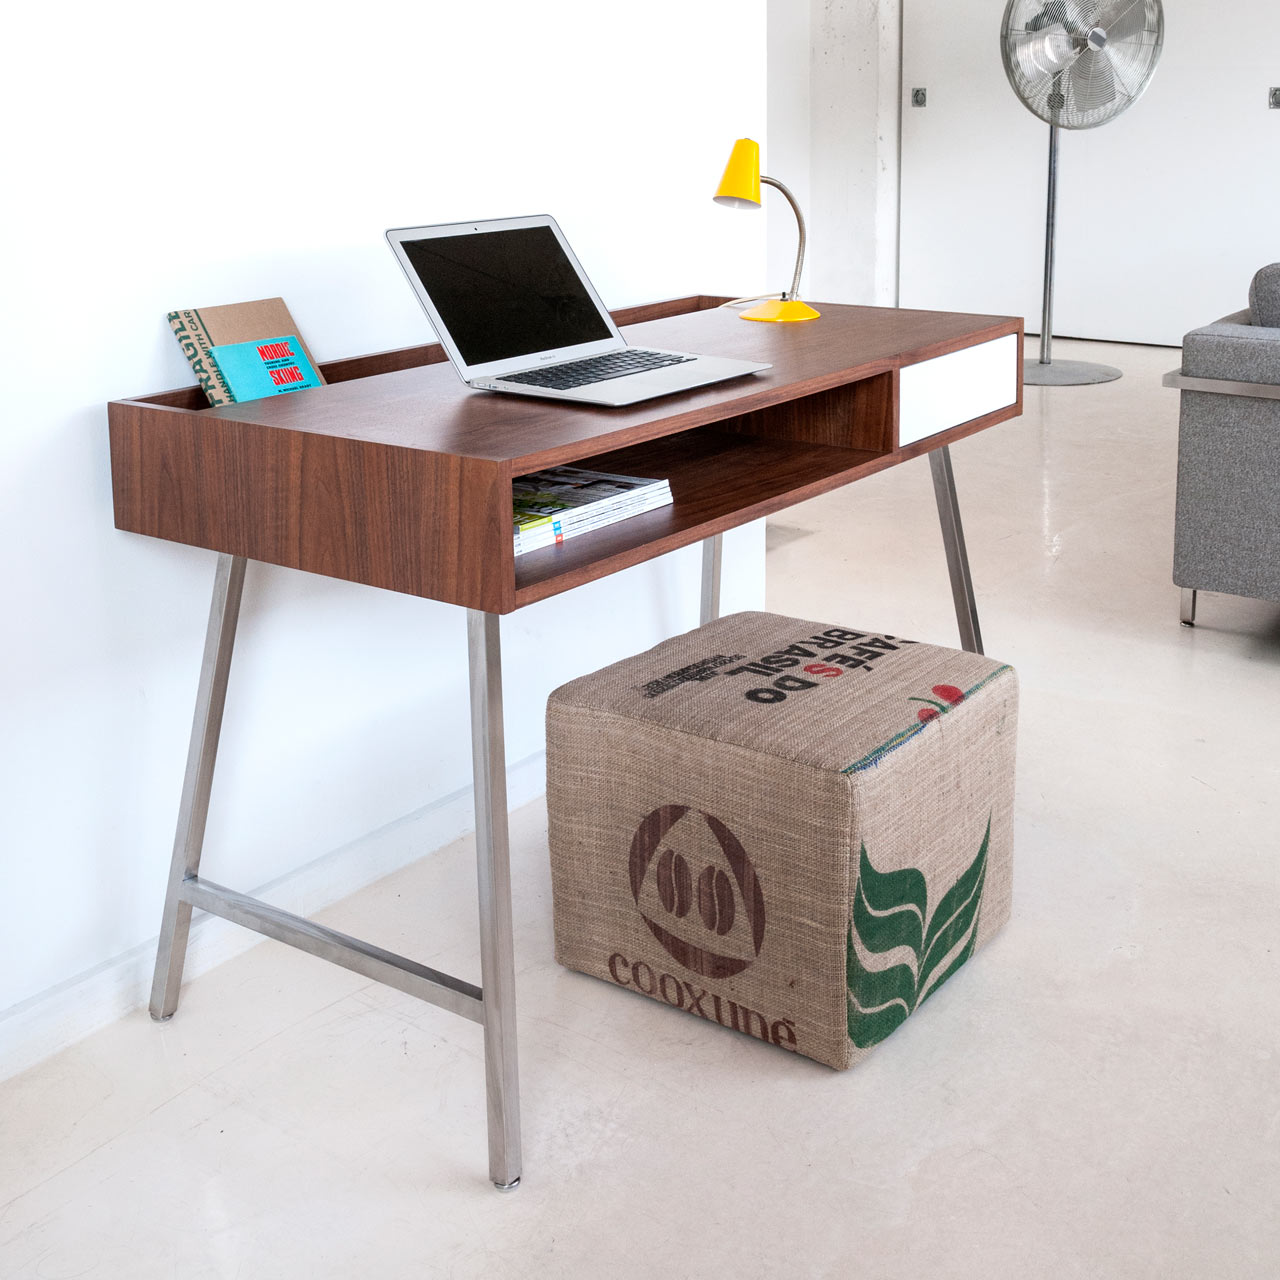 Modern Desks From Gus Modern Design Milk